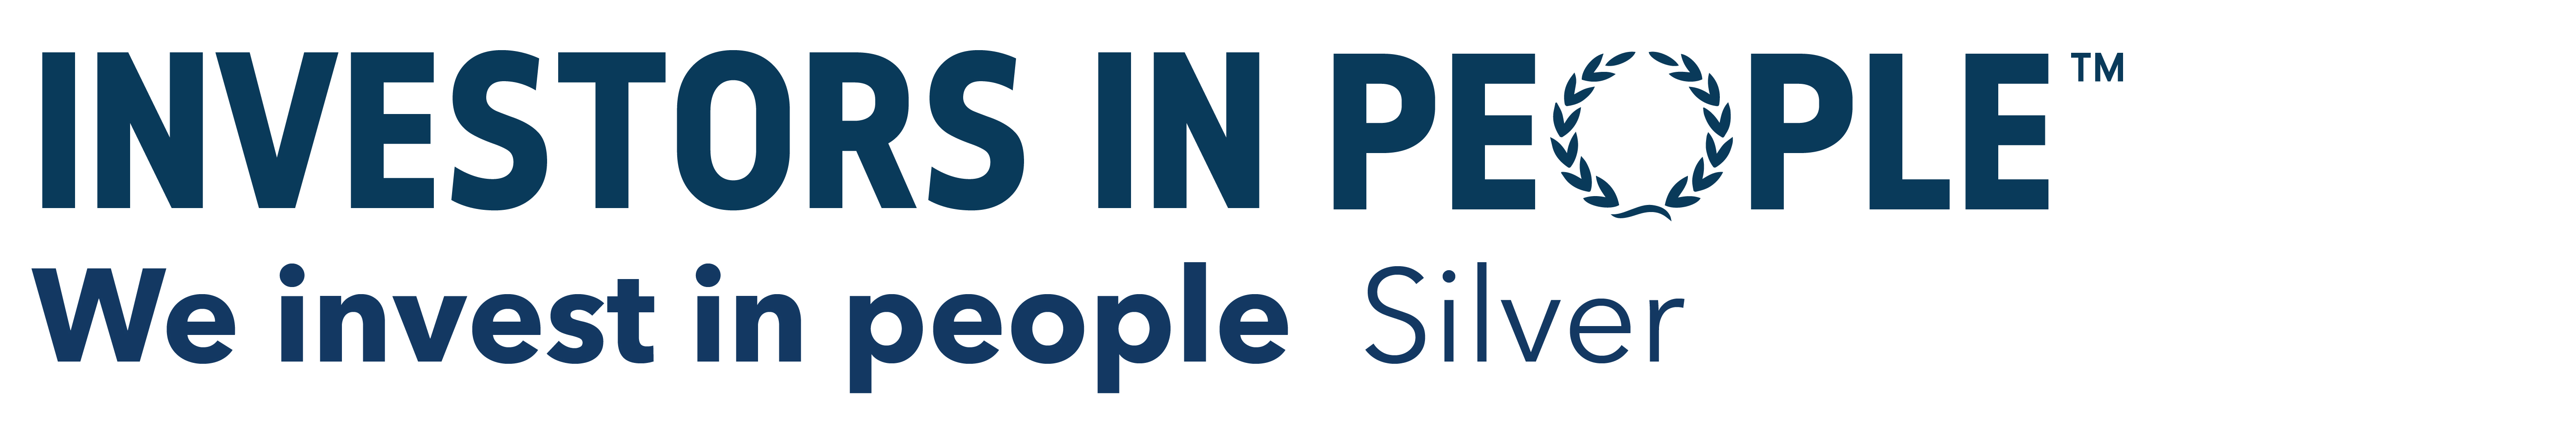 we-invest-in-people-silver-blue-3